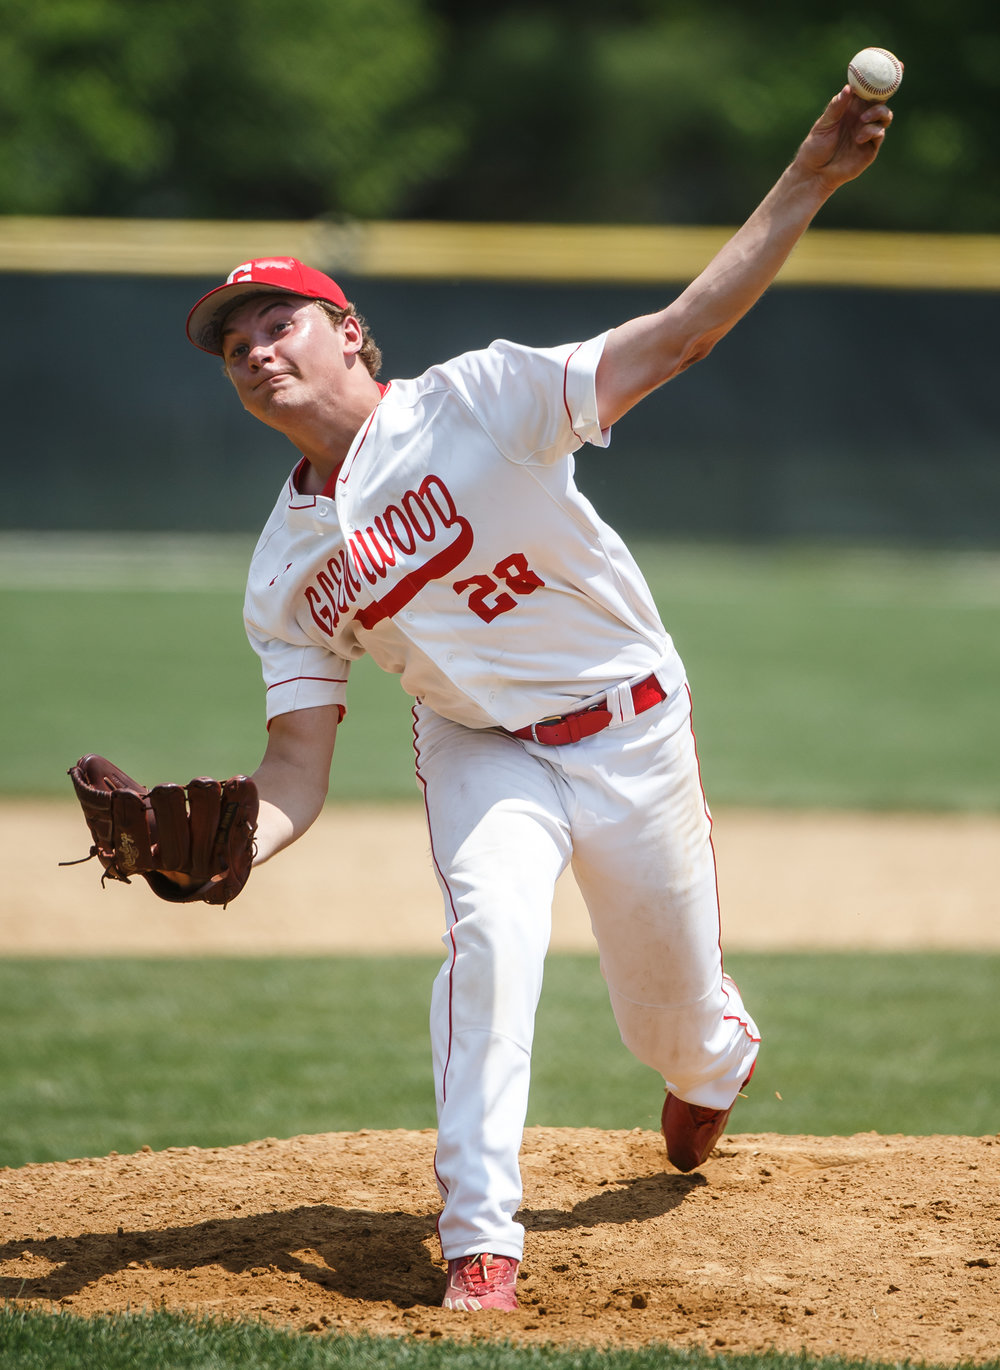 Glenwood's Reid Detmers (28) delivers a pitch against Champaign Central in the fourth inning during the Class 3A Glenwood Sectional championship at Chatham Community Park, Saturday, June 3, 2017, in Chatham, Ill. [Justin L. Fowler/The State Journal-Register]